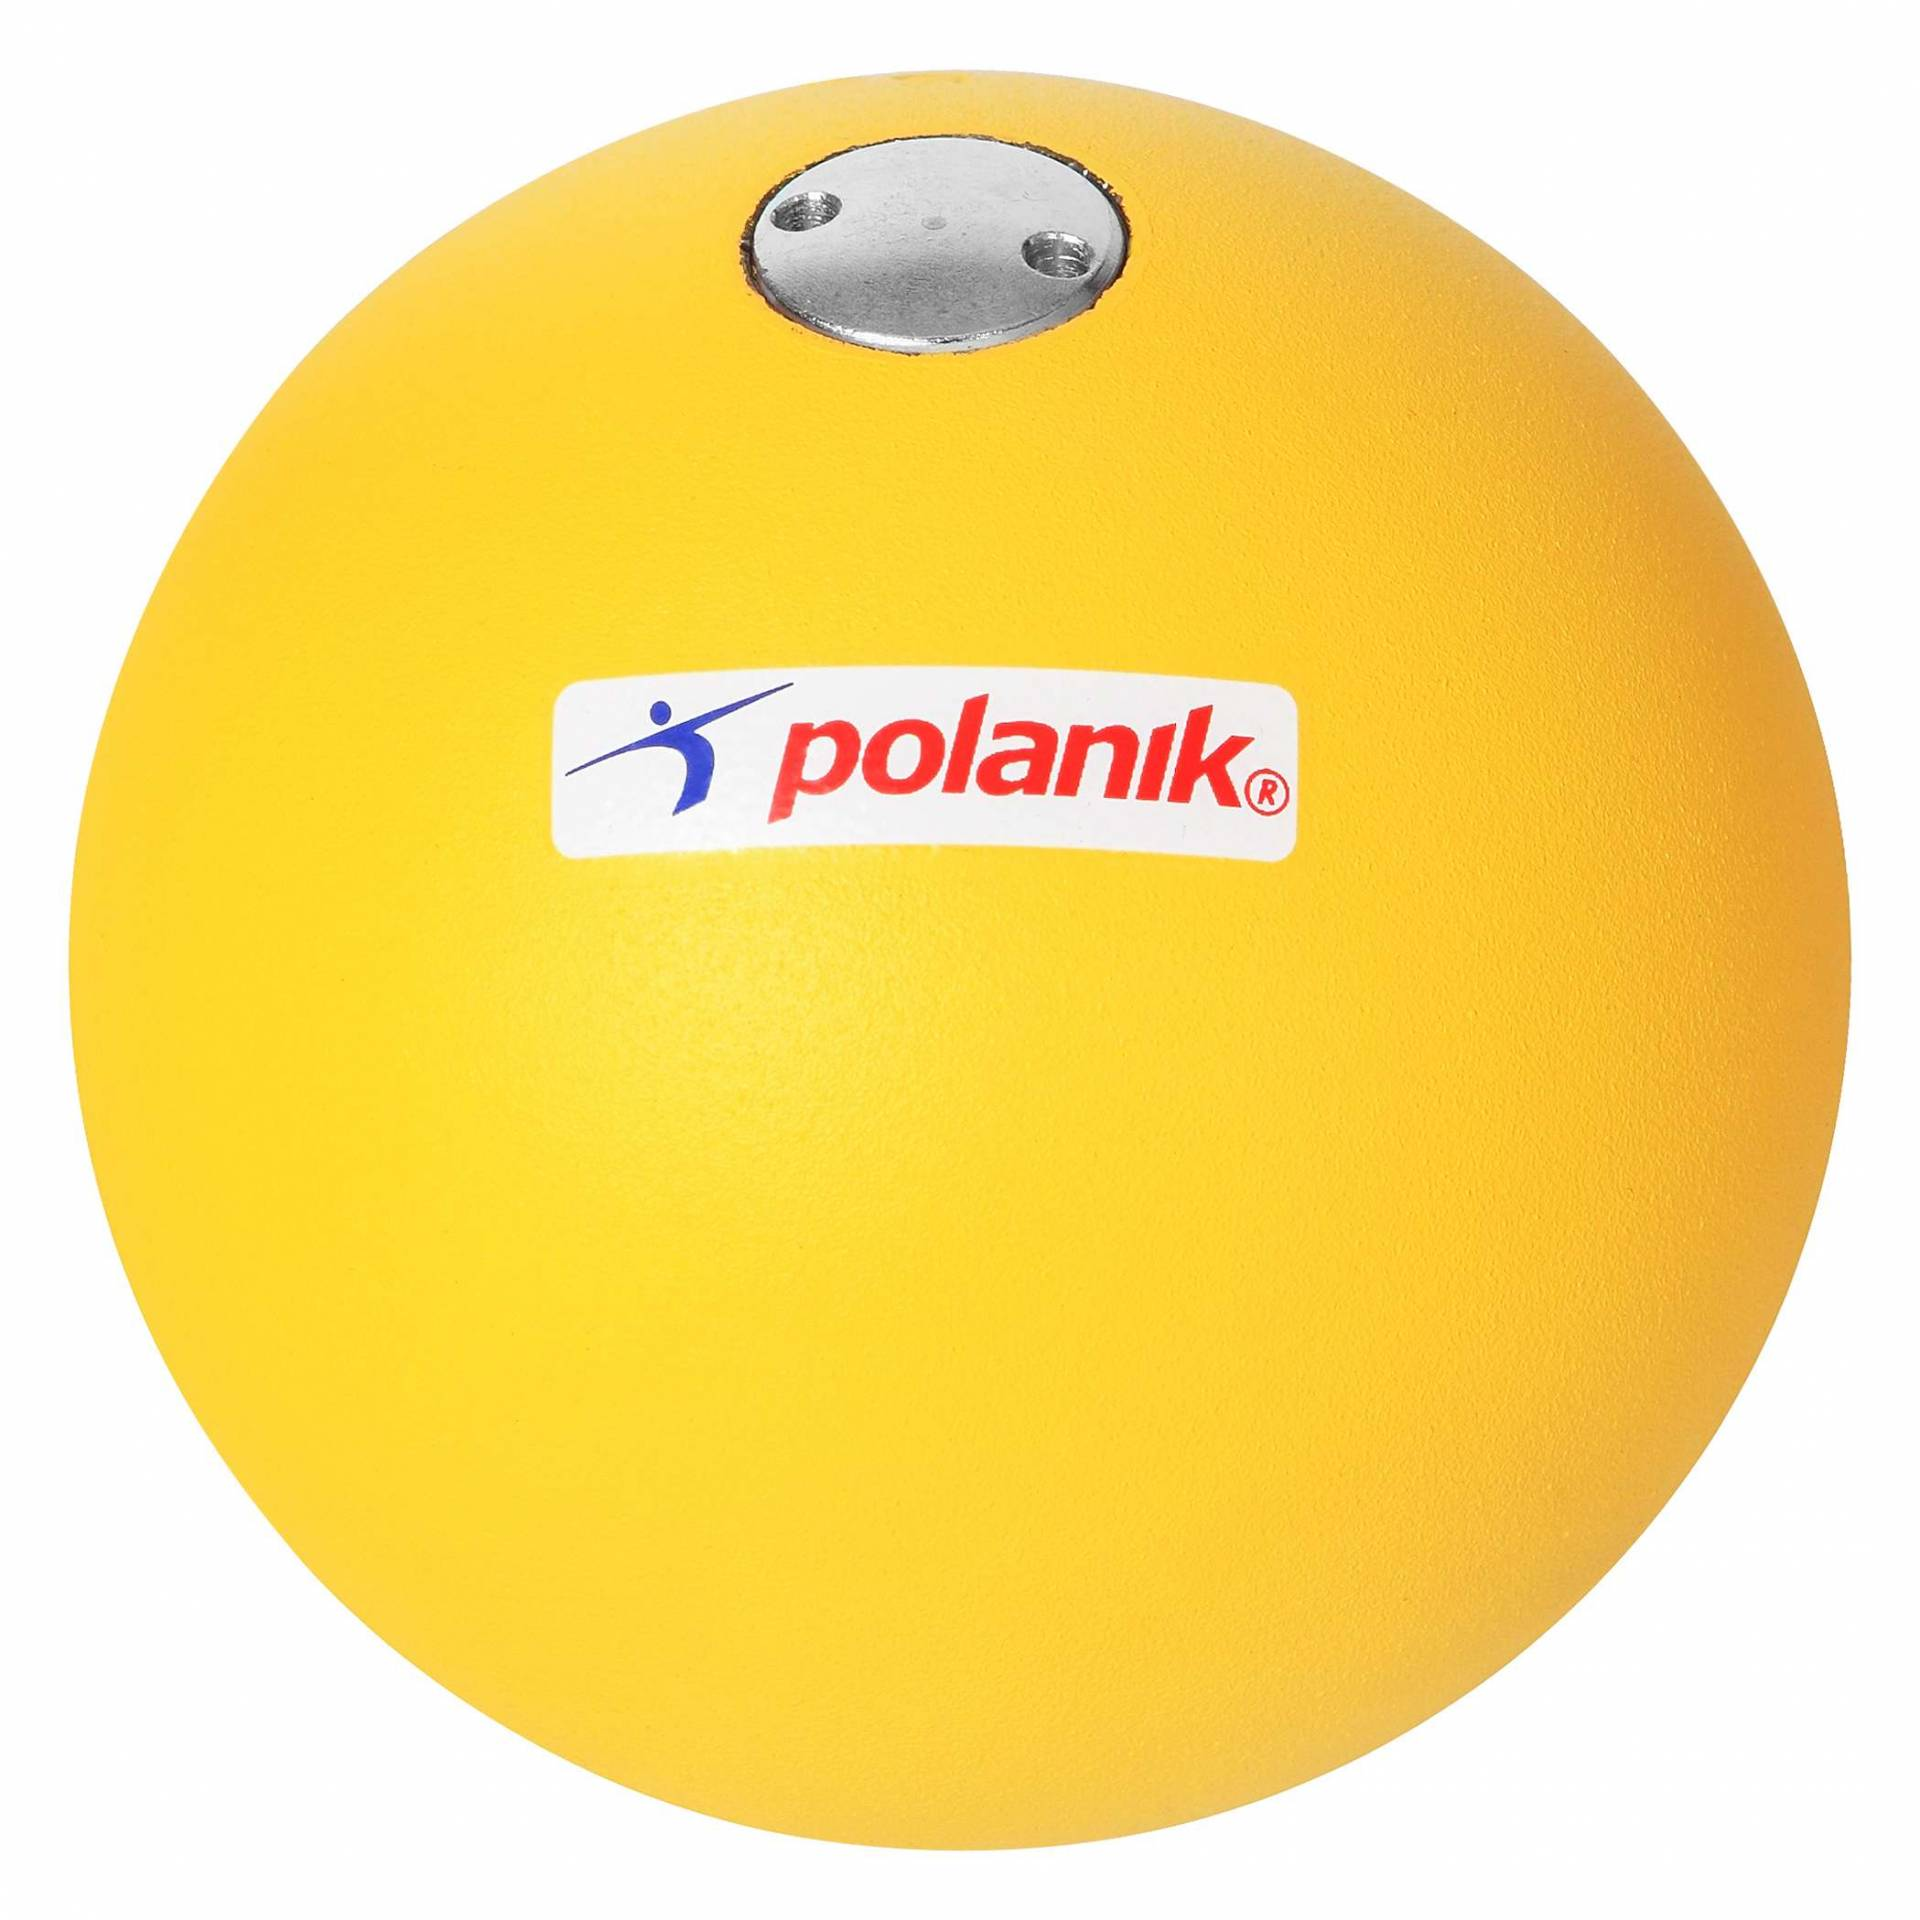 Polanik Wettkampf-Stoßkugel, 108 mm, World Athletics, 3 kg von Polanik